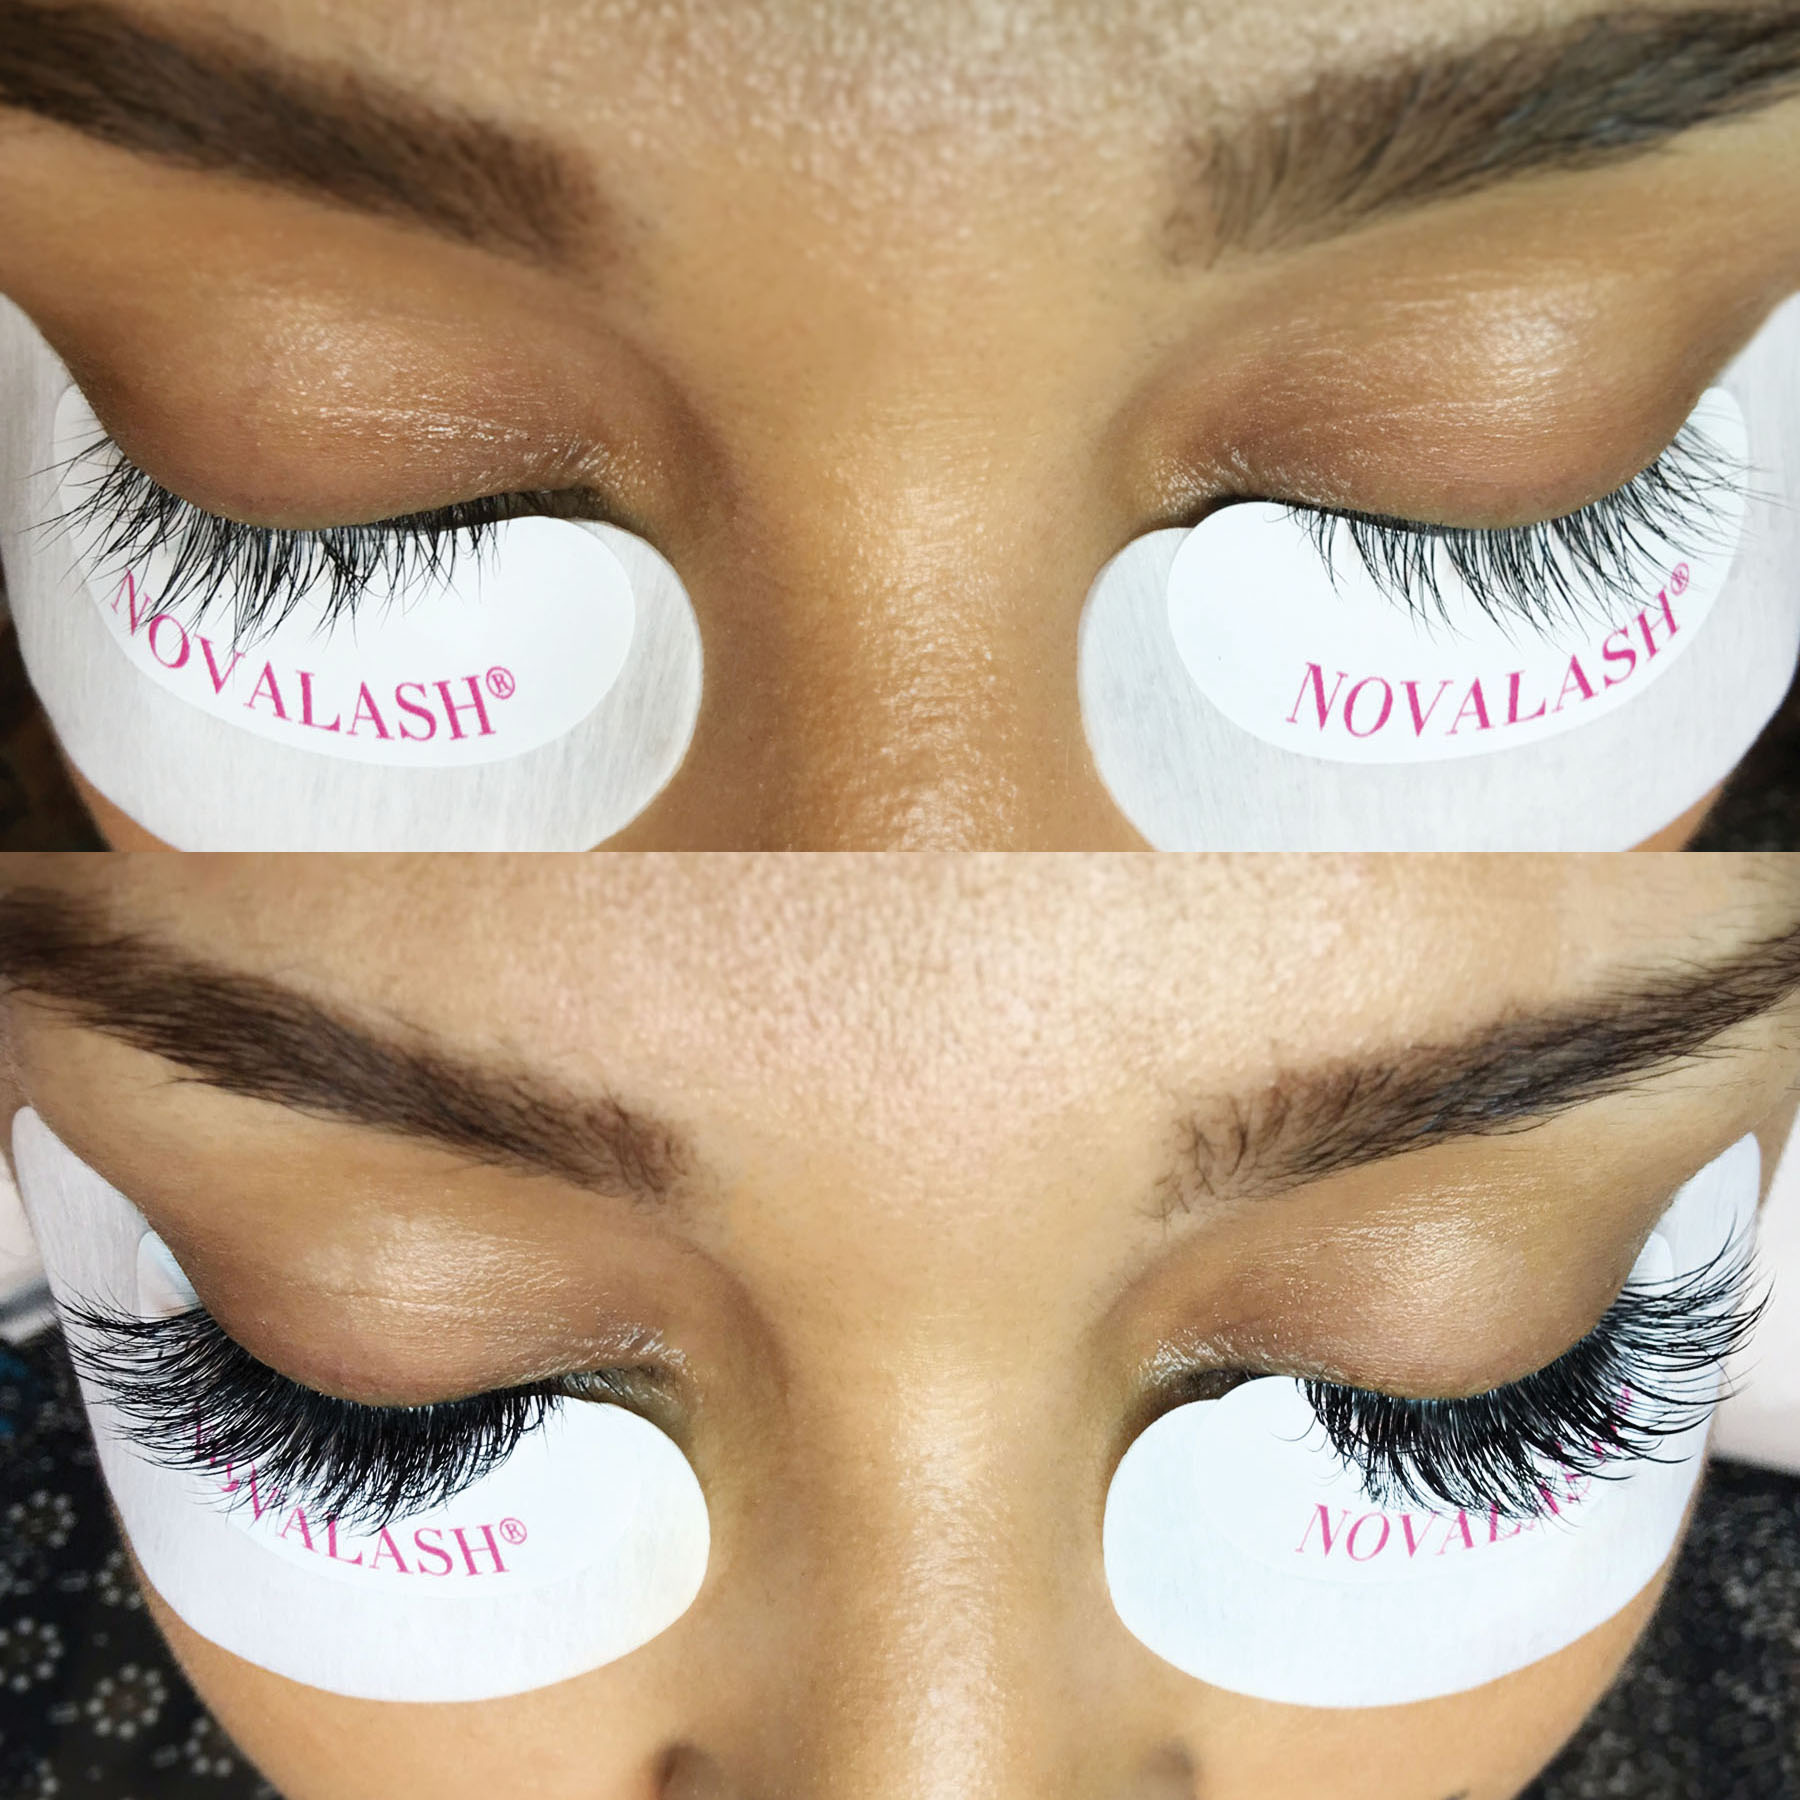 Before and After a NovaLash eyelash extension service.